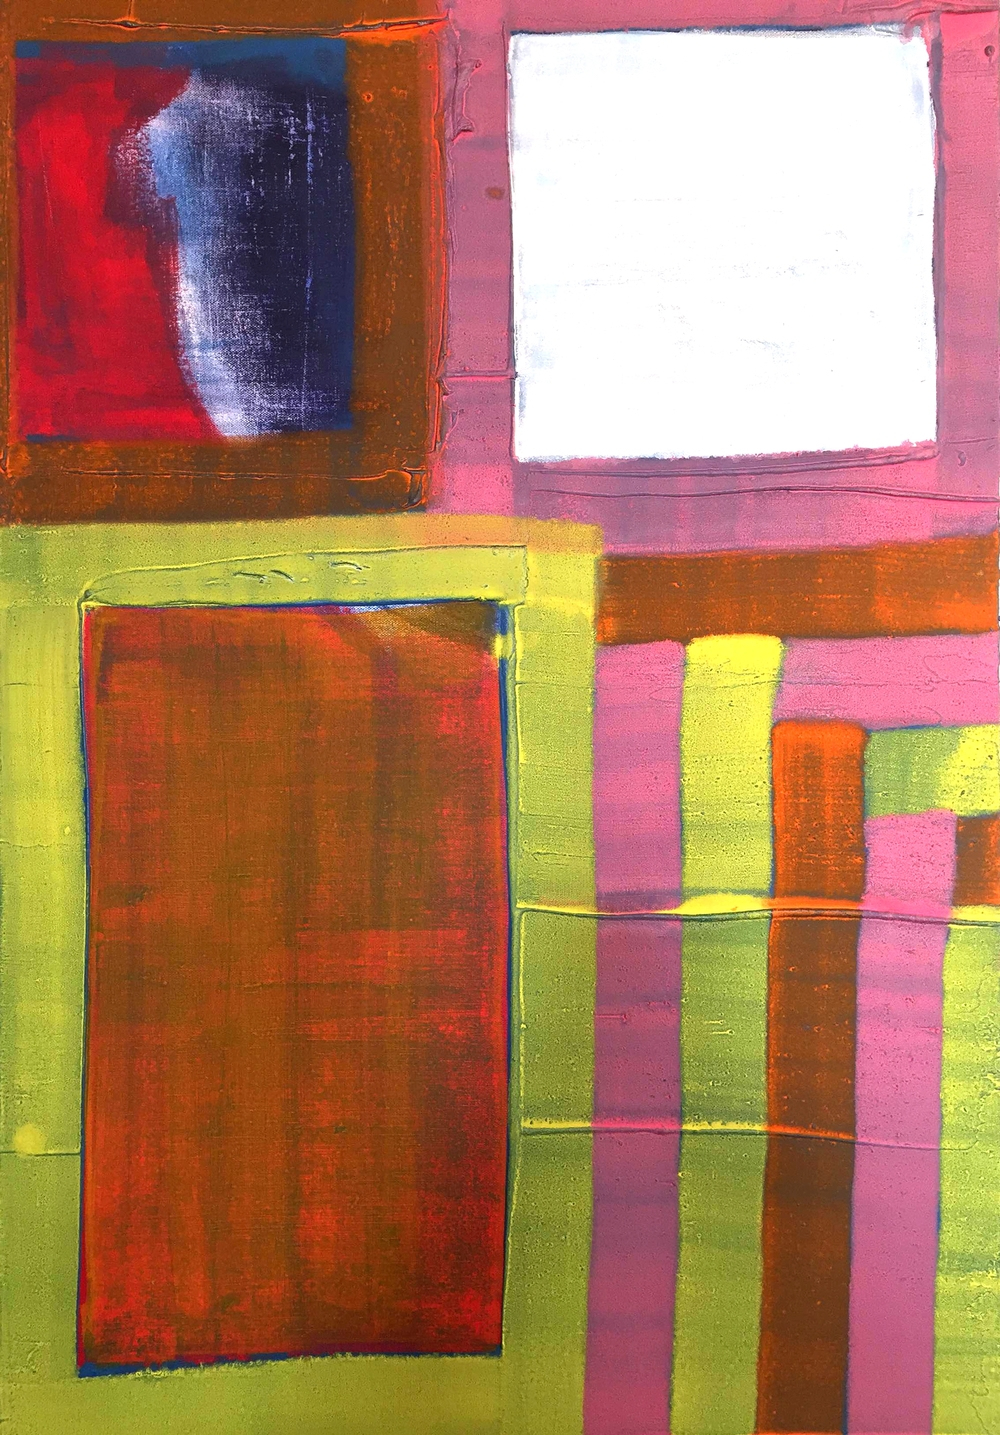 mixed media, painted screen on canvas / 24 x 36 inches